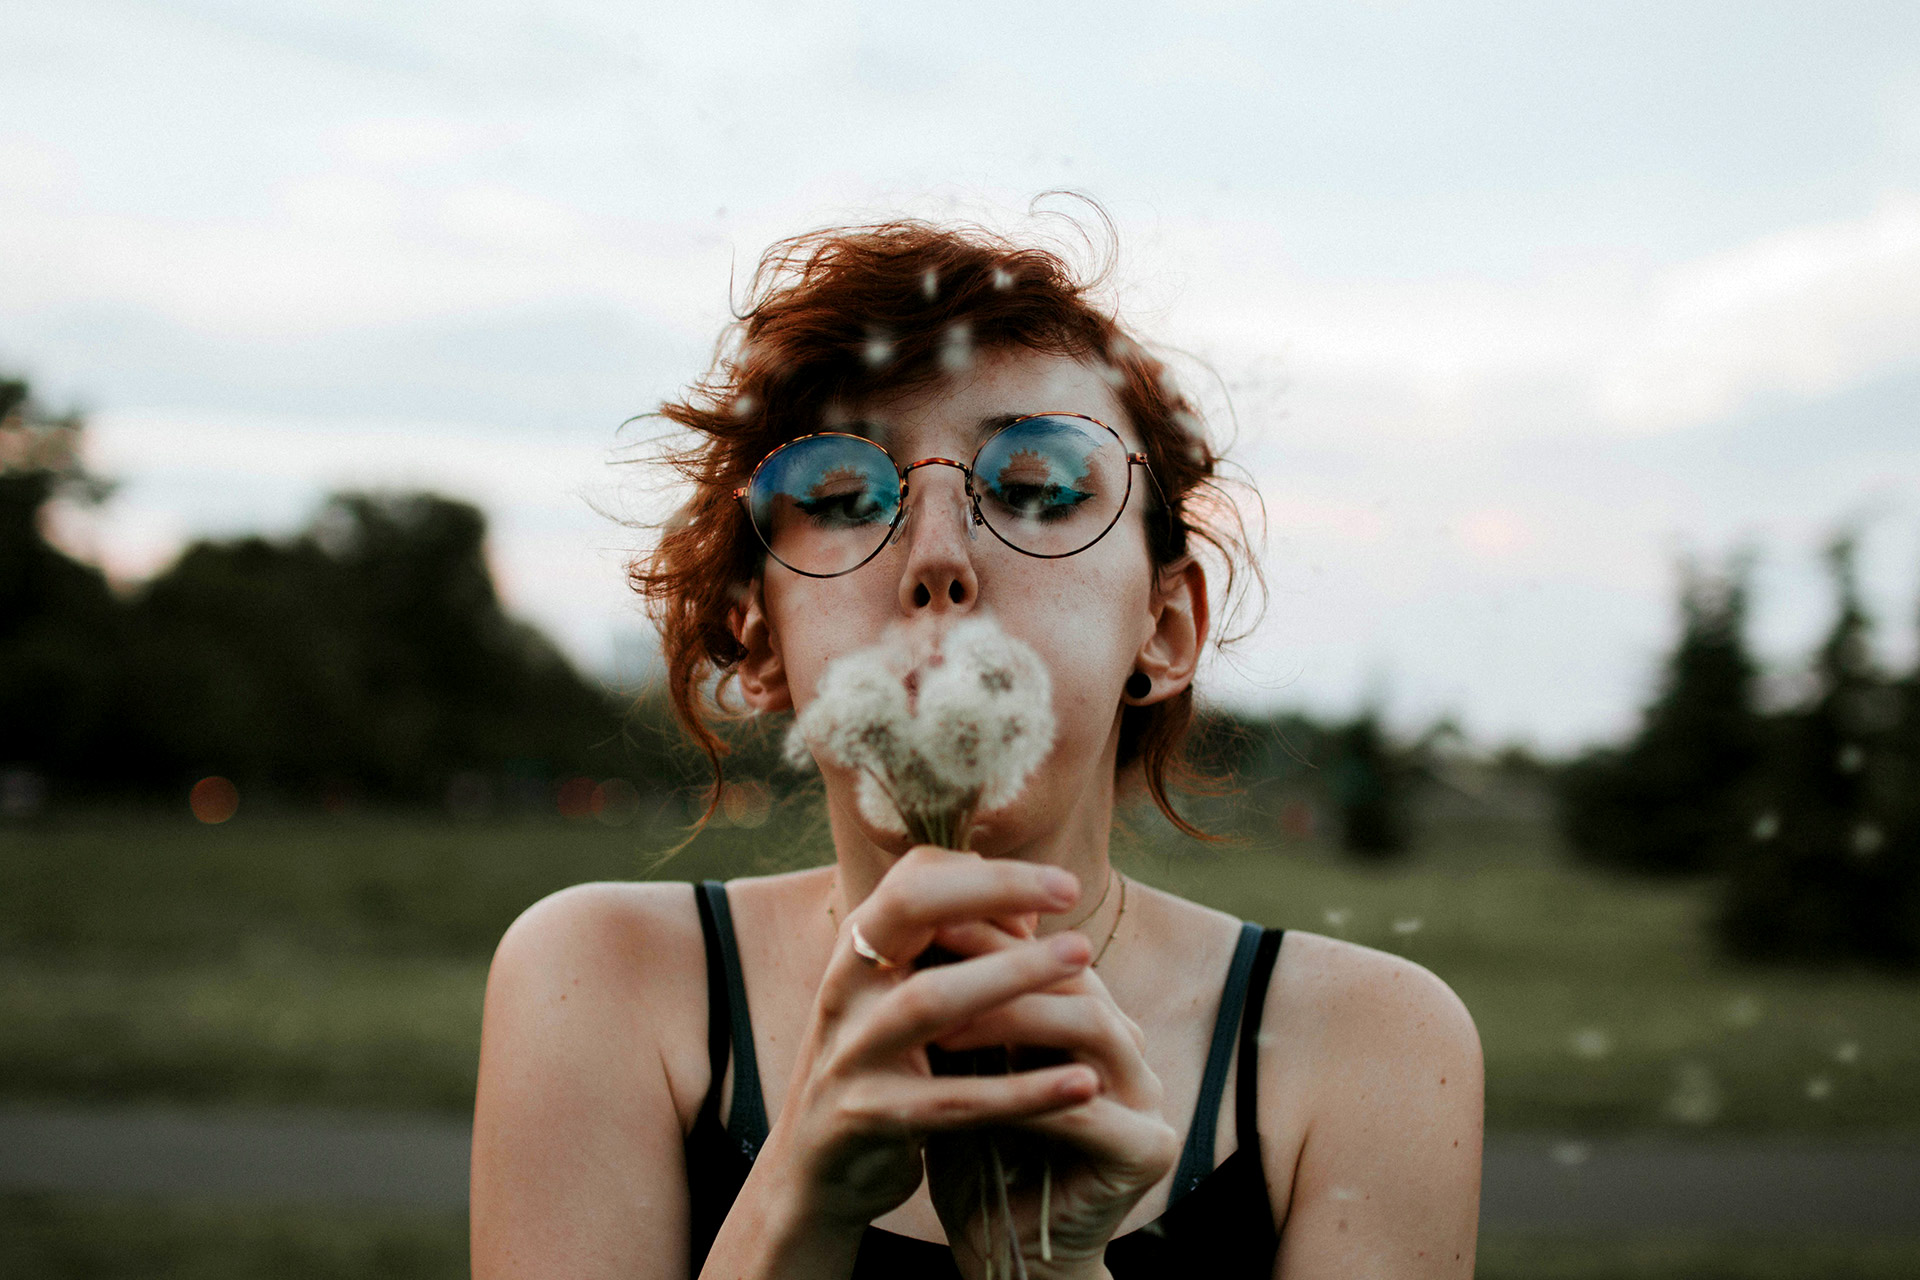 Girl blowing on dandelions in a park